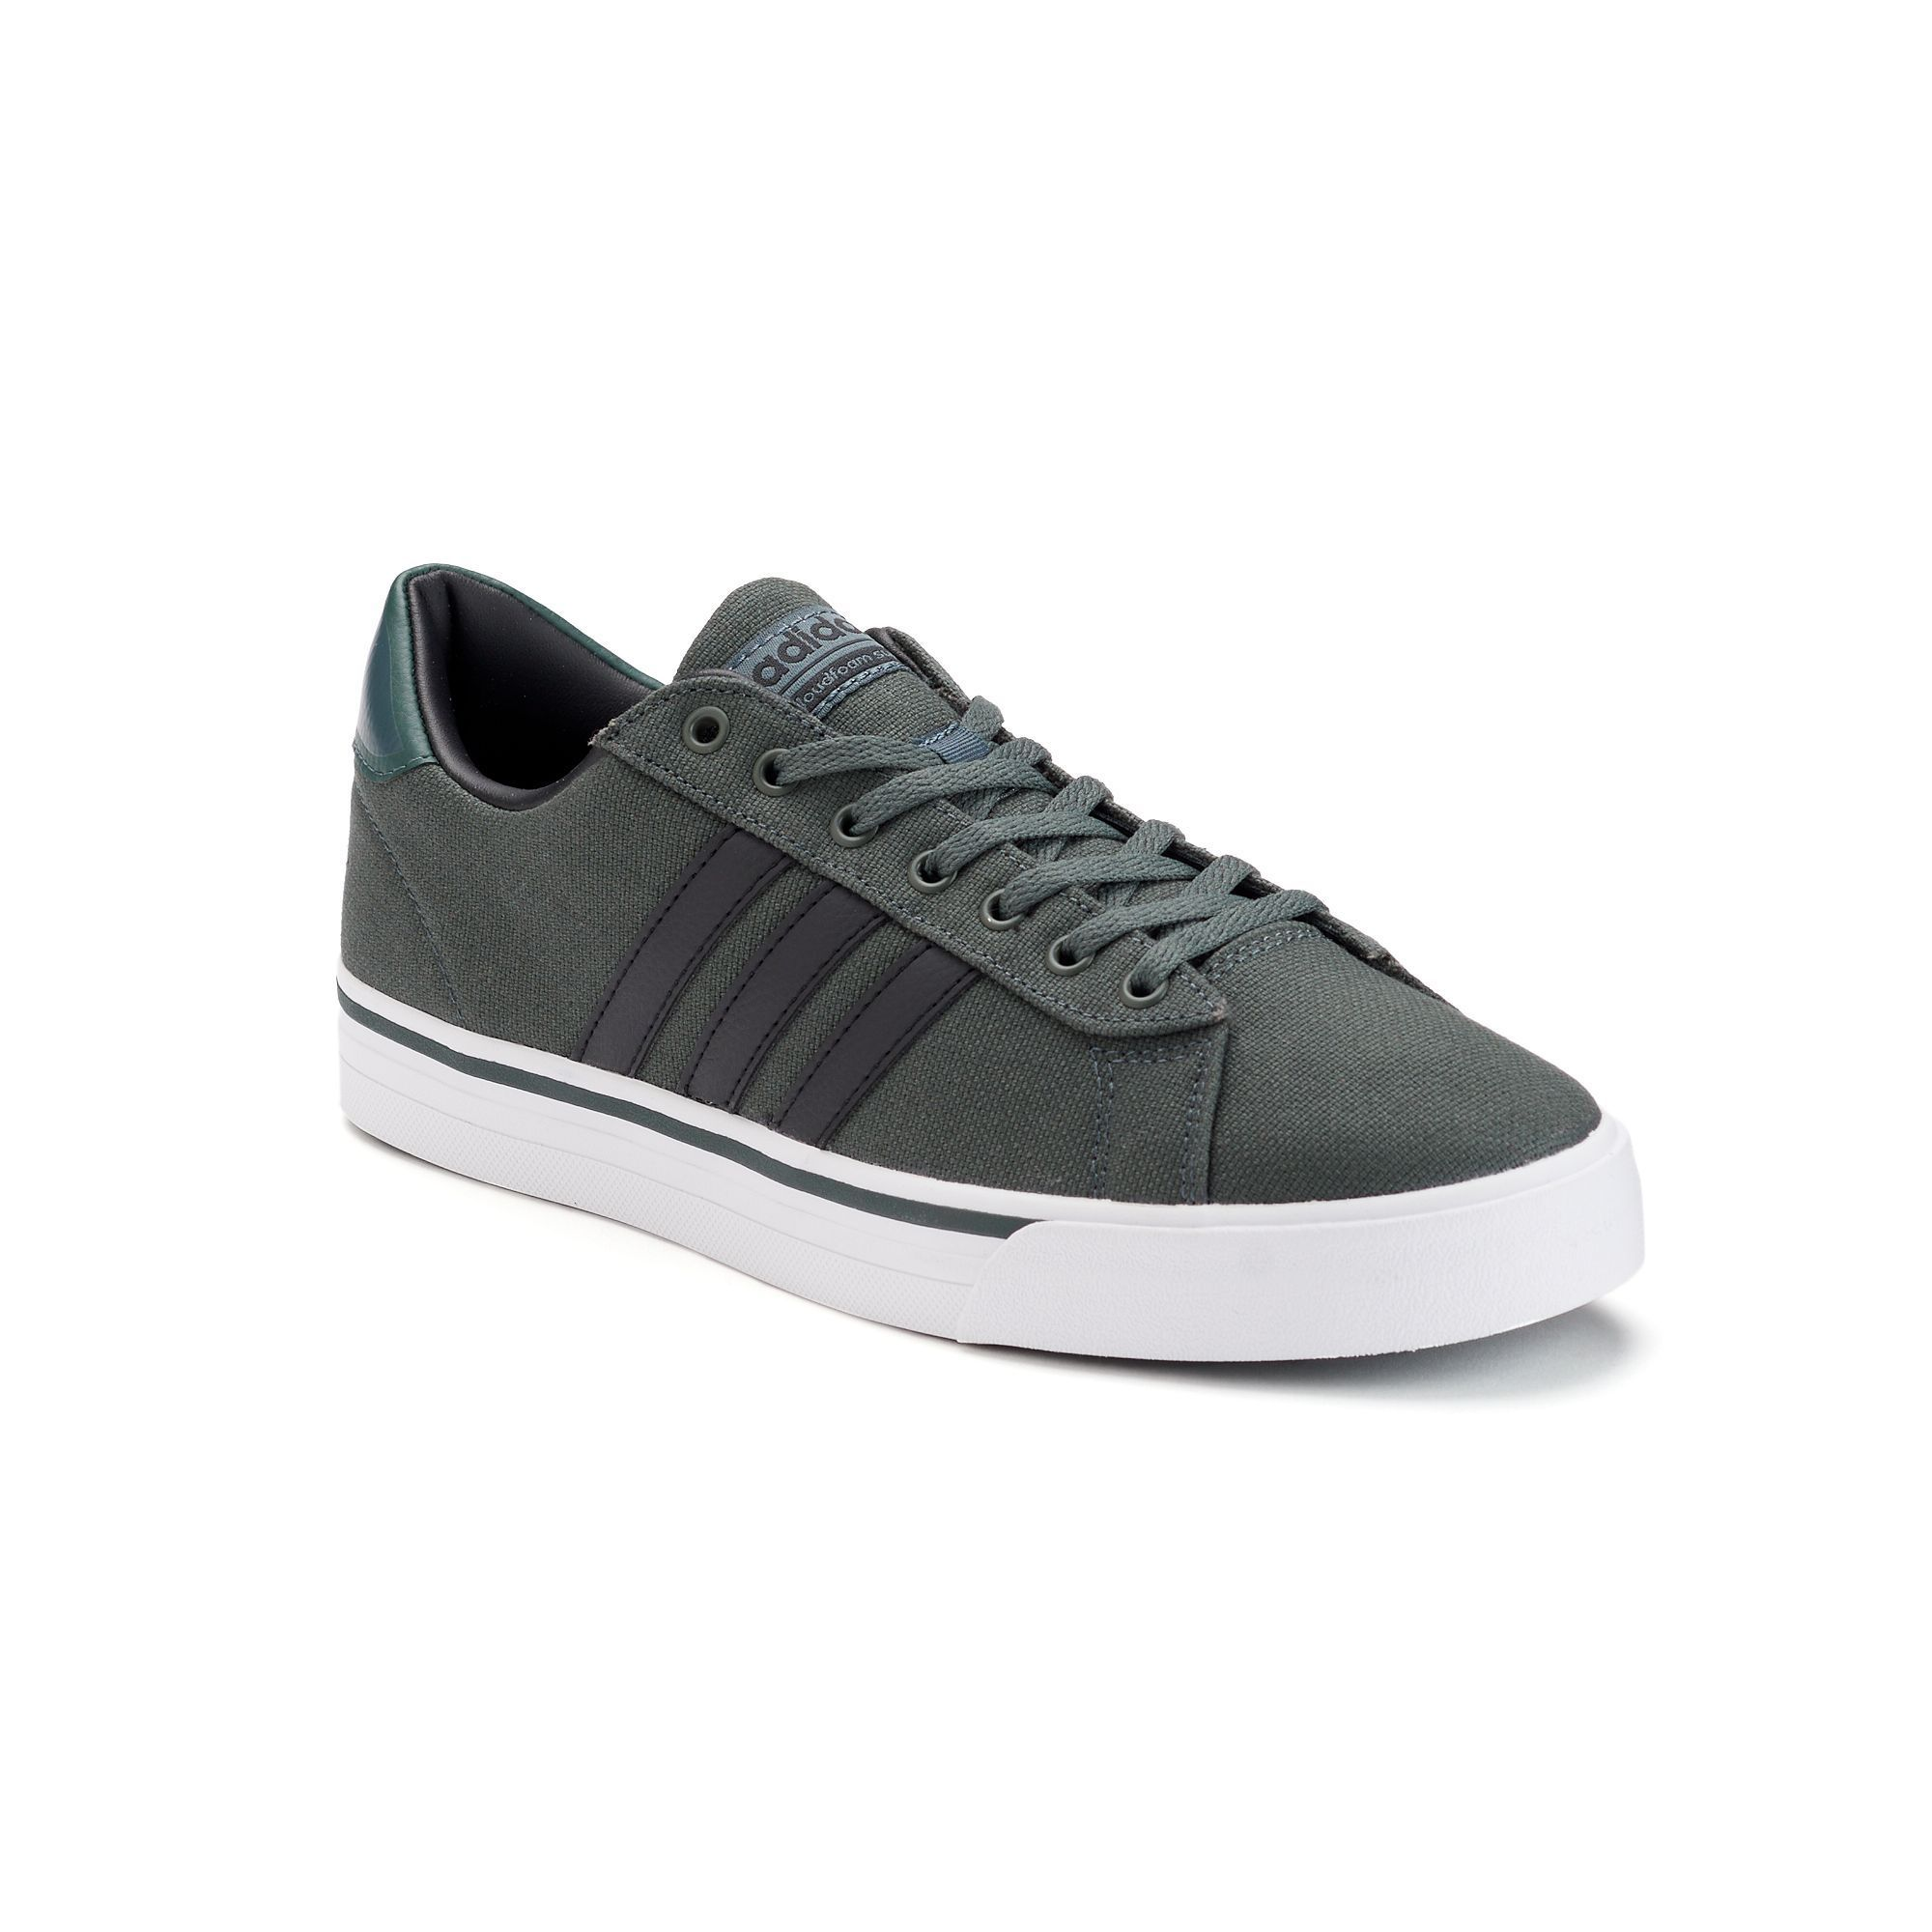 d4cca94364e Adidas NEO Cloudfoam Super Daily Men s Shoes